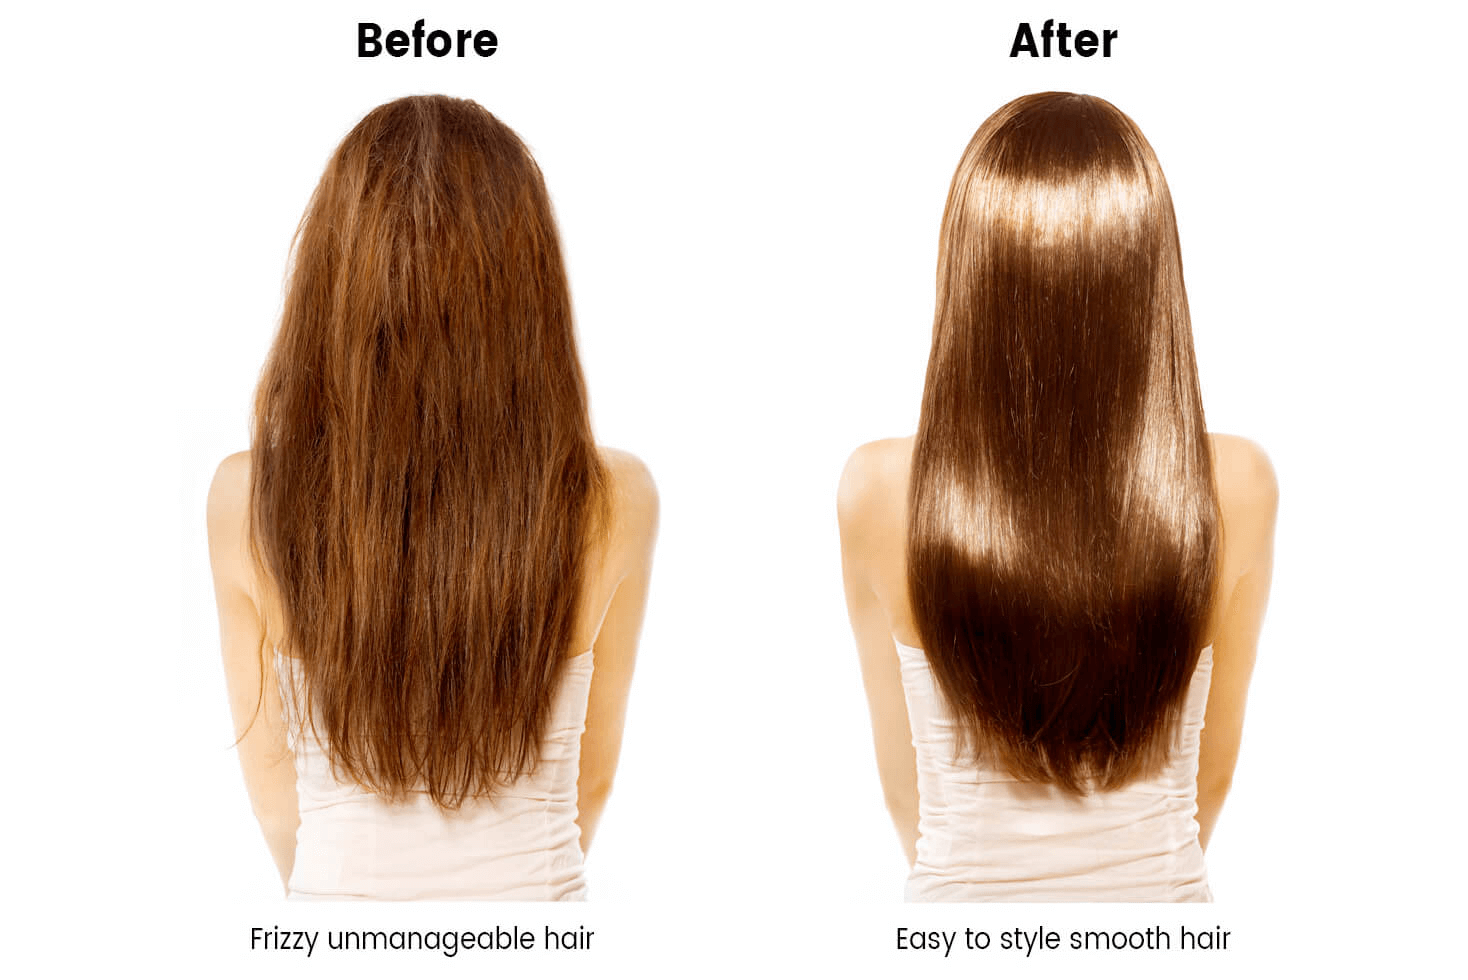 A before and after Hair Botox picture of a woman with long brown hair.